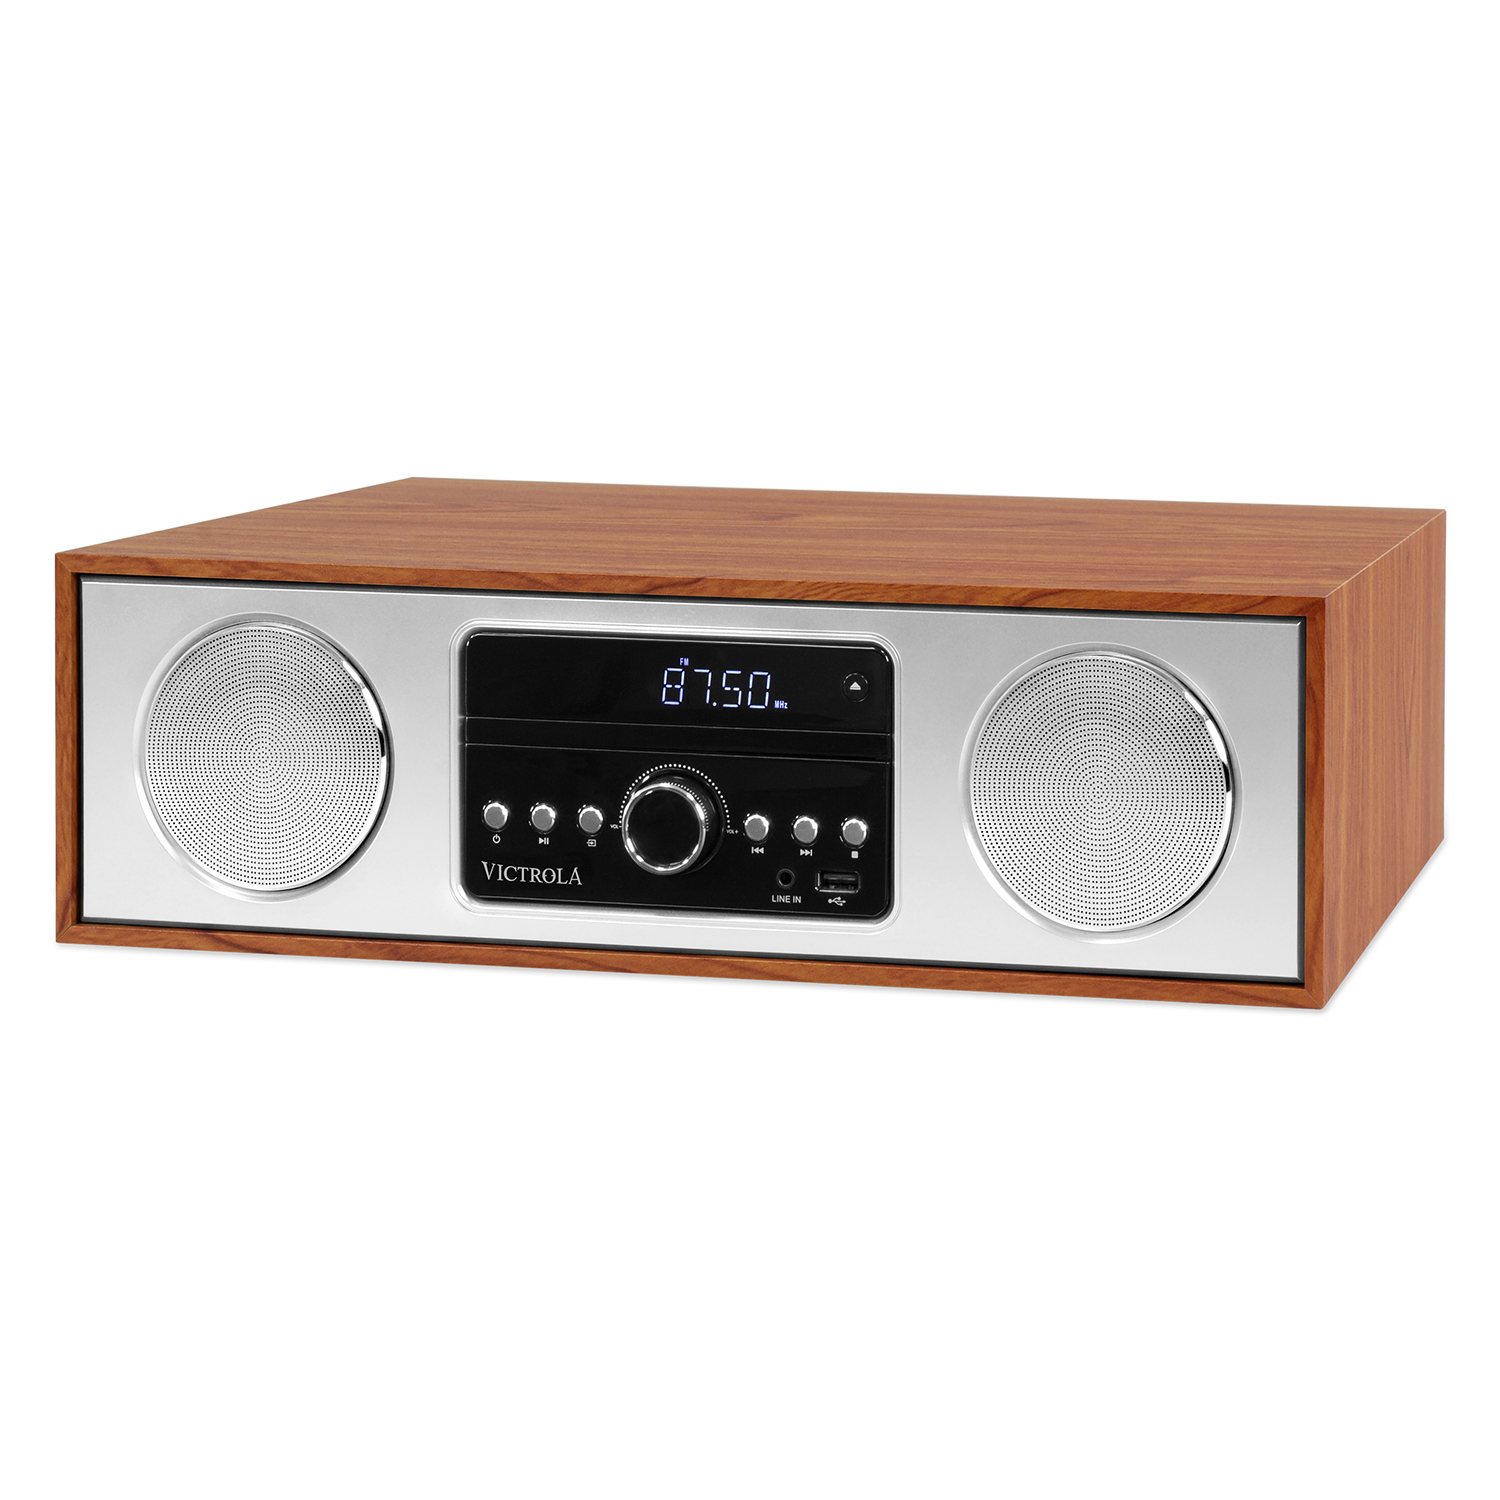 VS-120-MLP, 30 watt wooden microsystem, wood/alu, FM radio, CD, USB, BT, mahogany